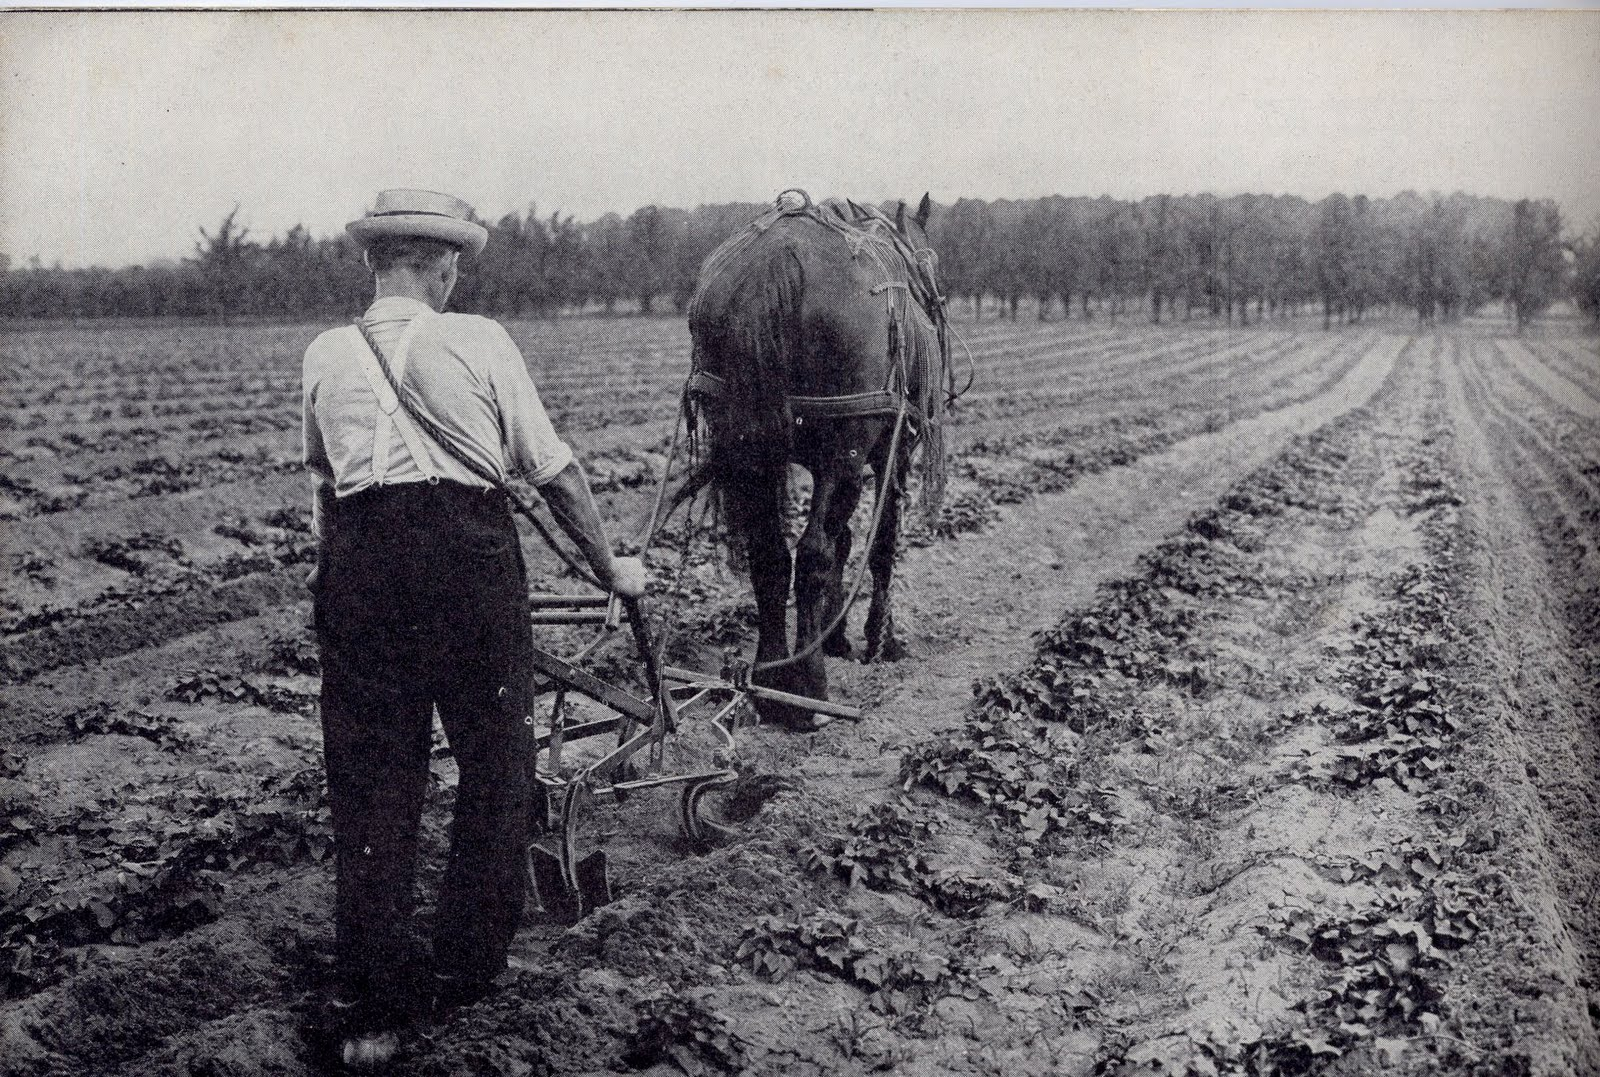 And all the way into 1945, that horse hoe was still being used by farmers, as this catalog picture shows: